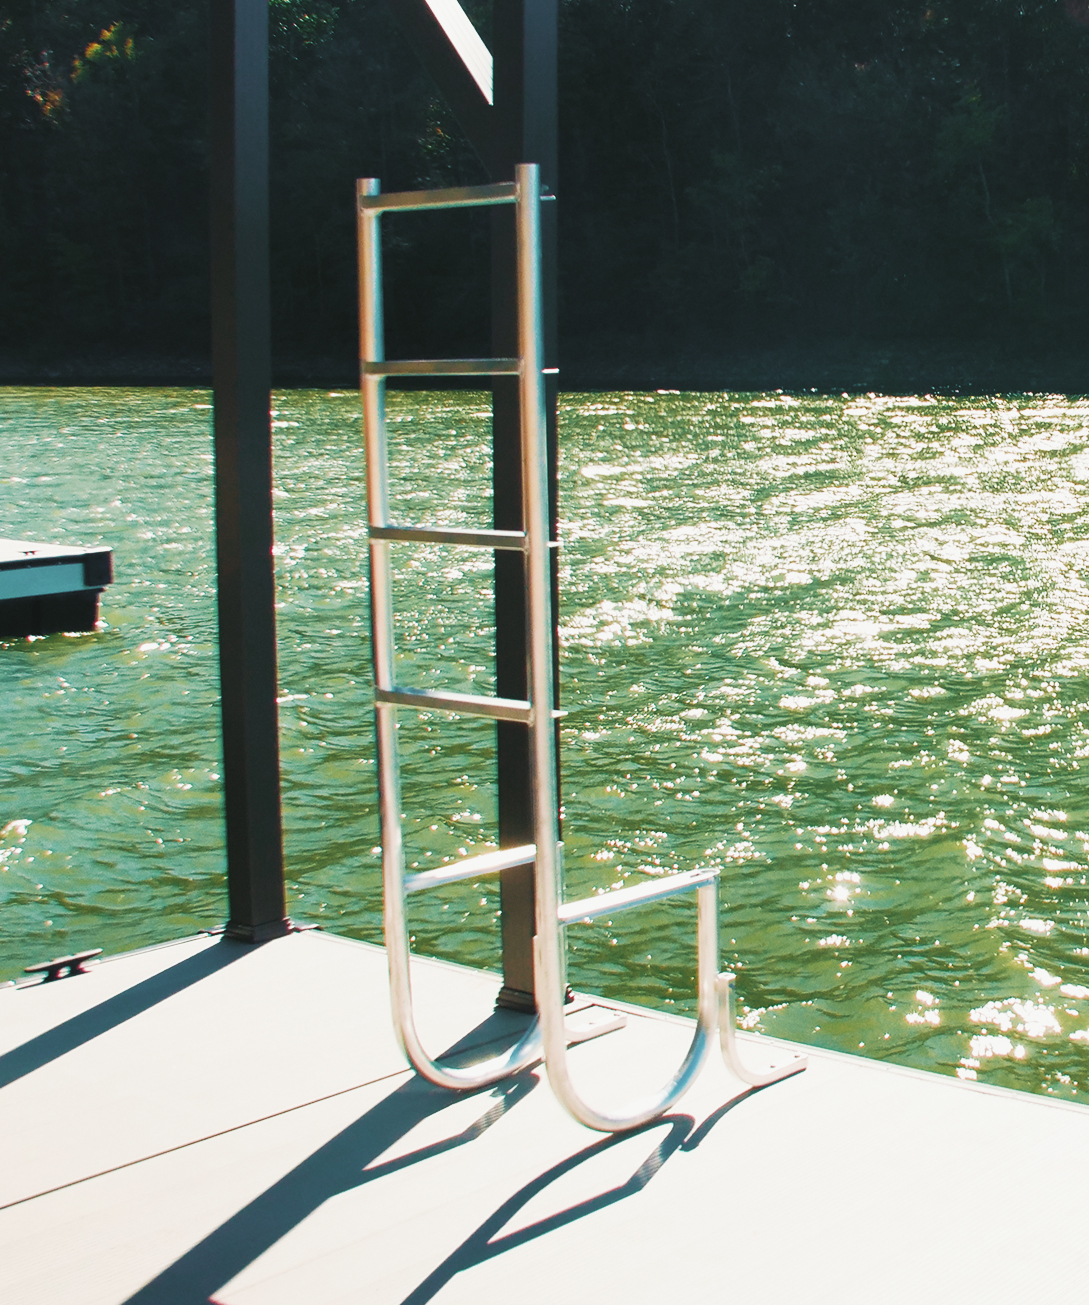 Flotation Systems, Inc. swim ladder out of the water